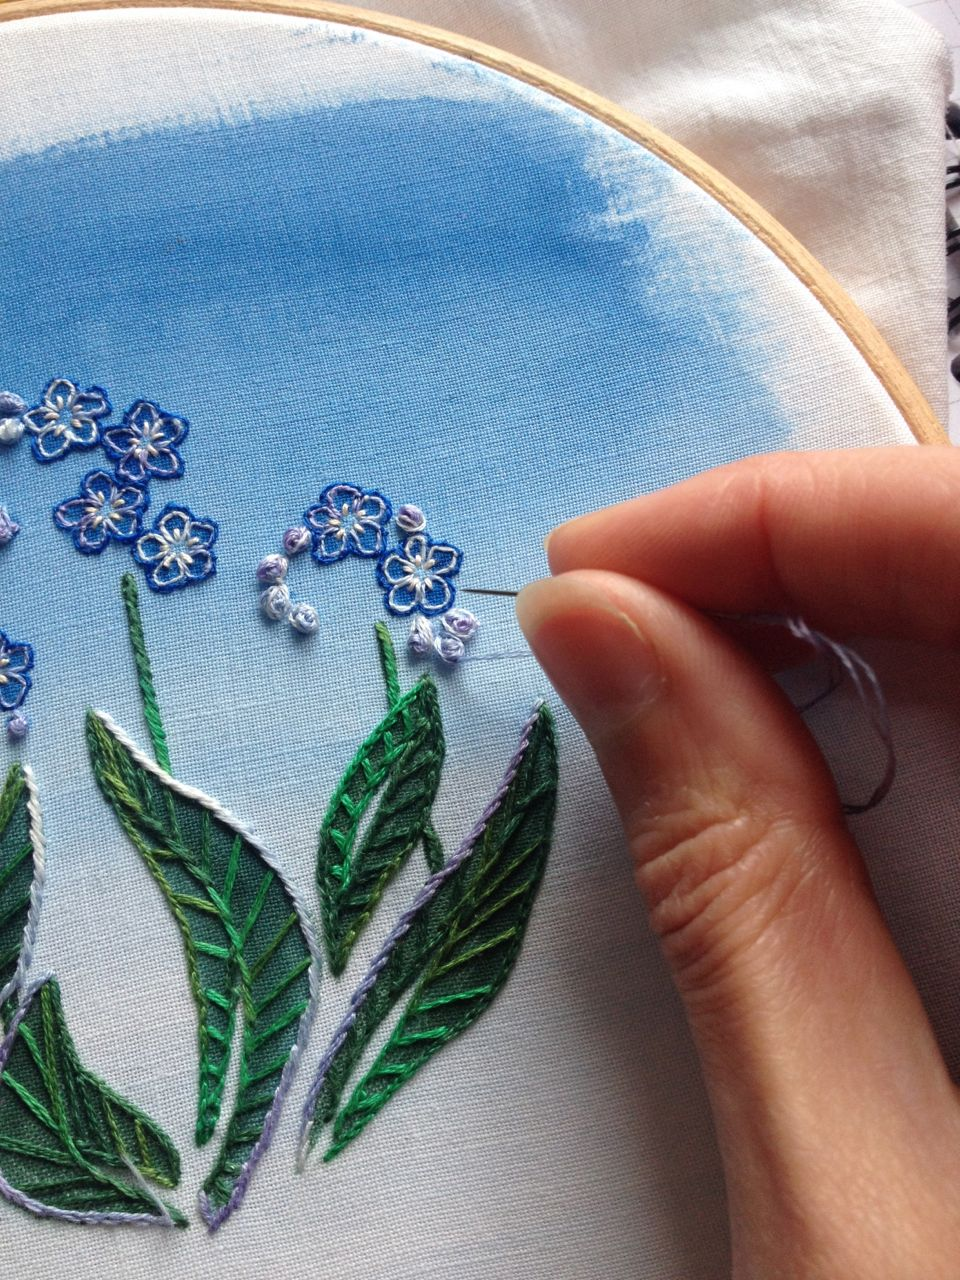 Embroidery based on my forget-me-not design.